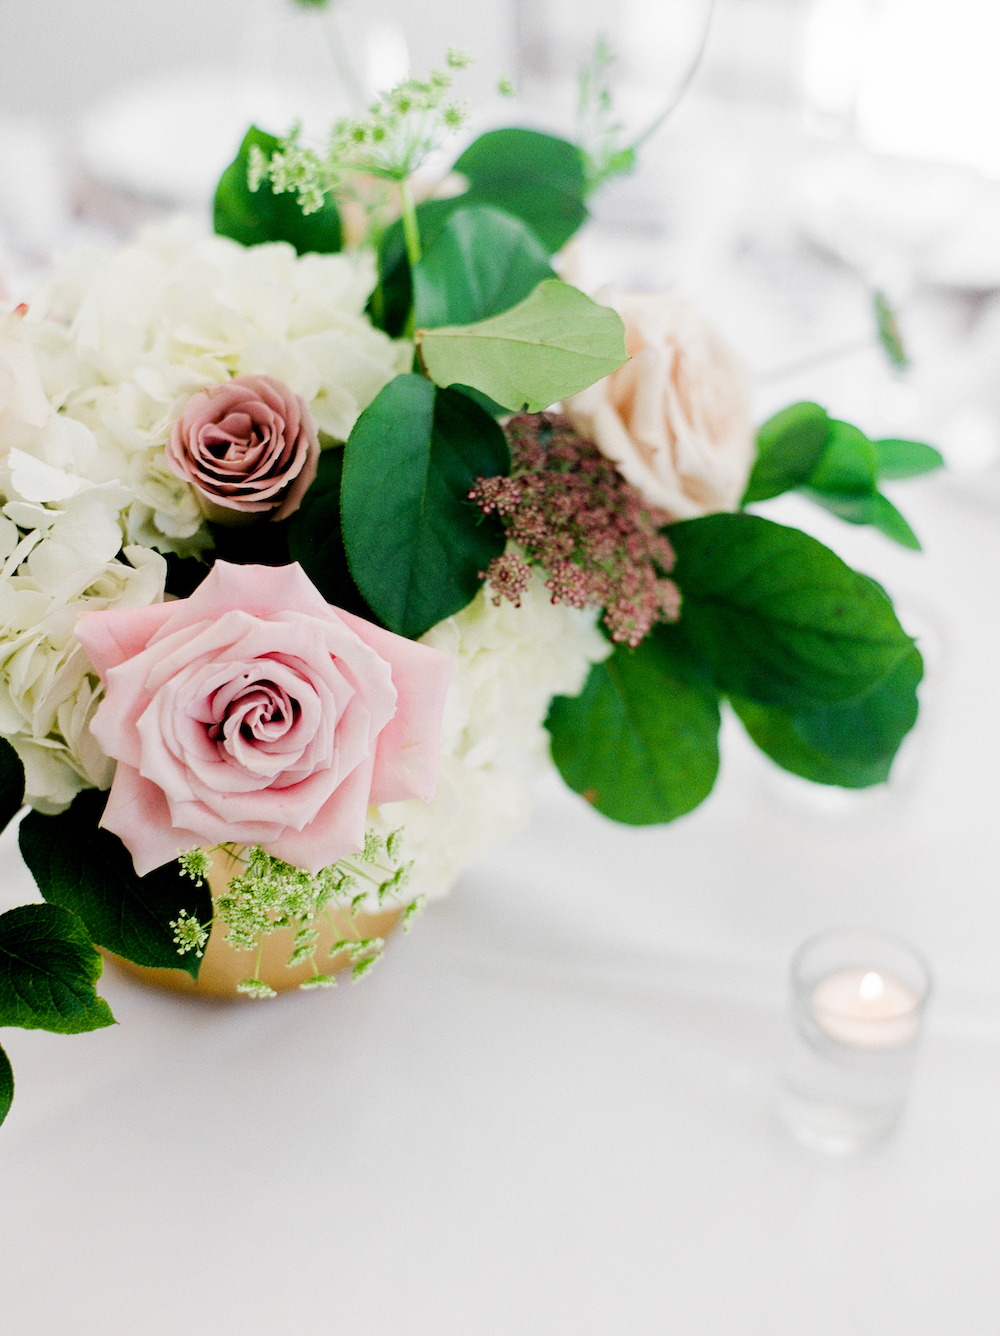 Blush and Cream Wedding Flowers Winnipeg - Wedding Decor and Event Design